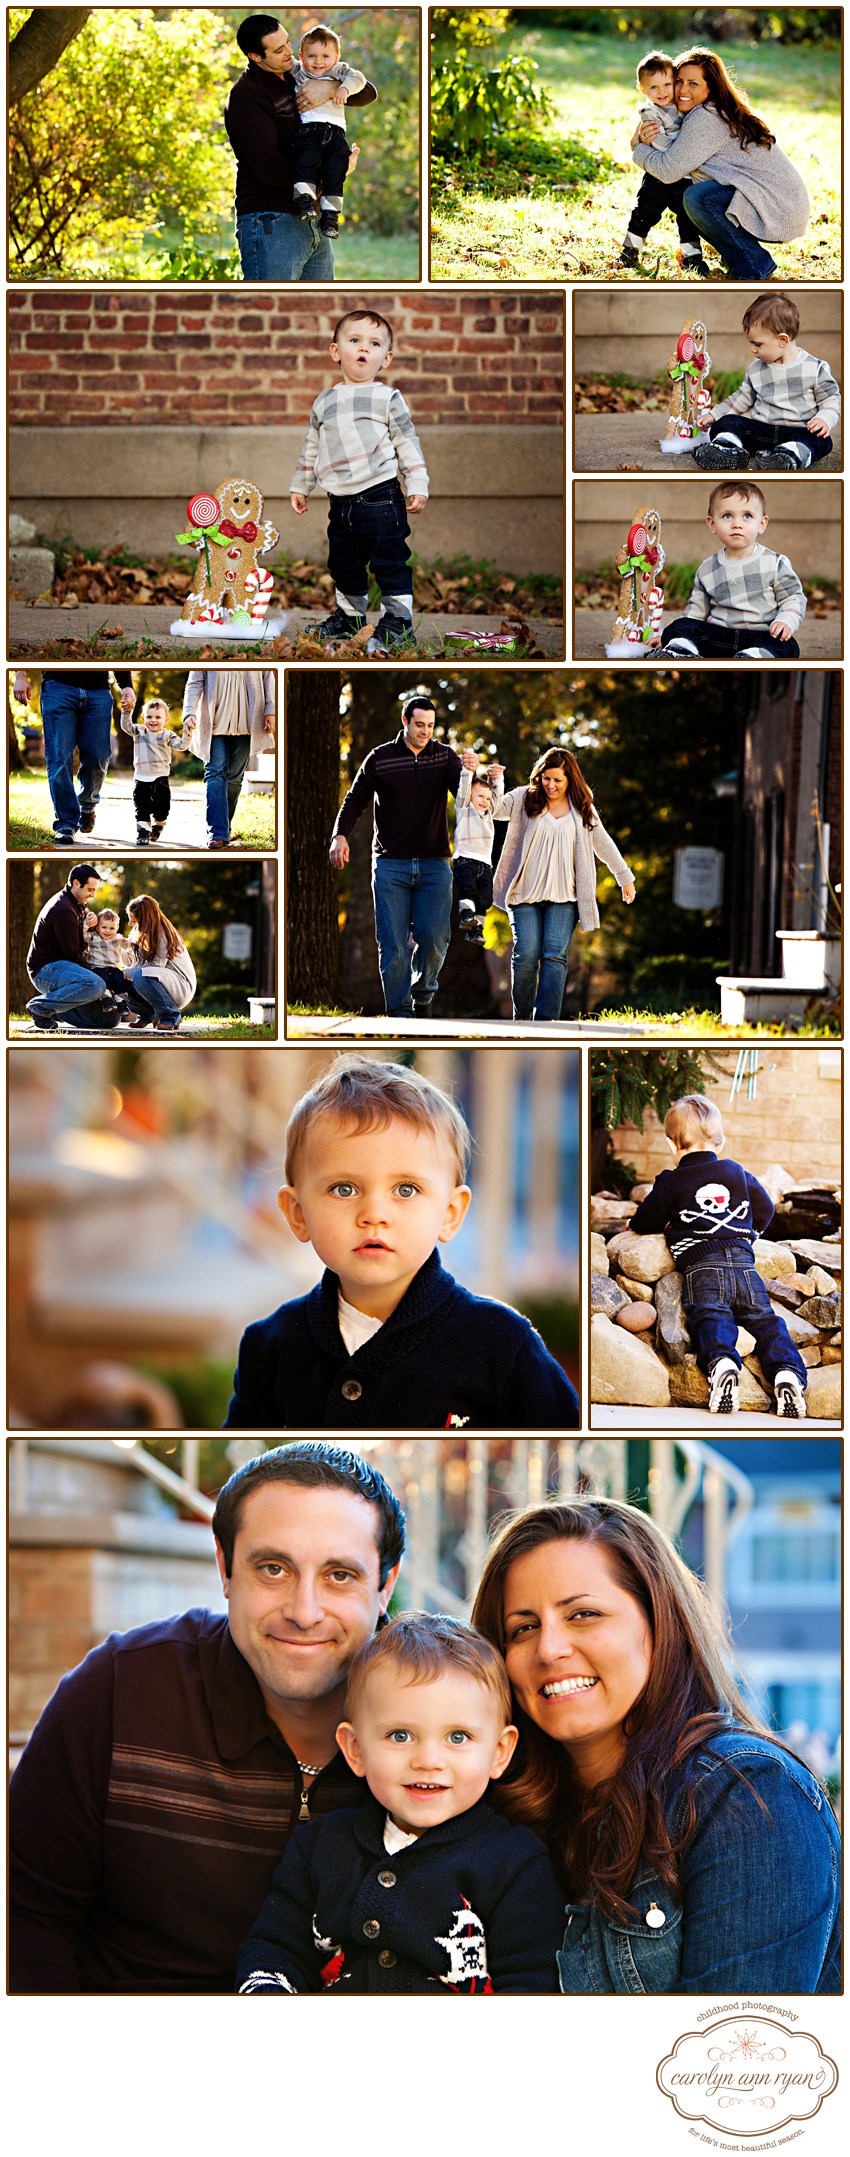 Charlotte, North Carolina Family Photographer Carolyn Ann Ryan photographs sweet family in classic styles